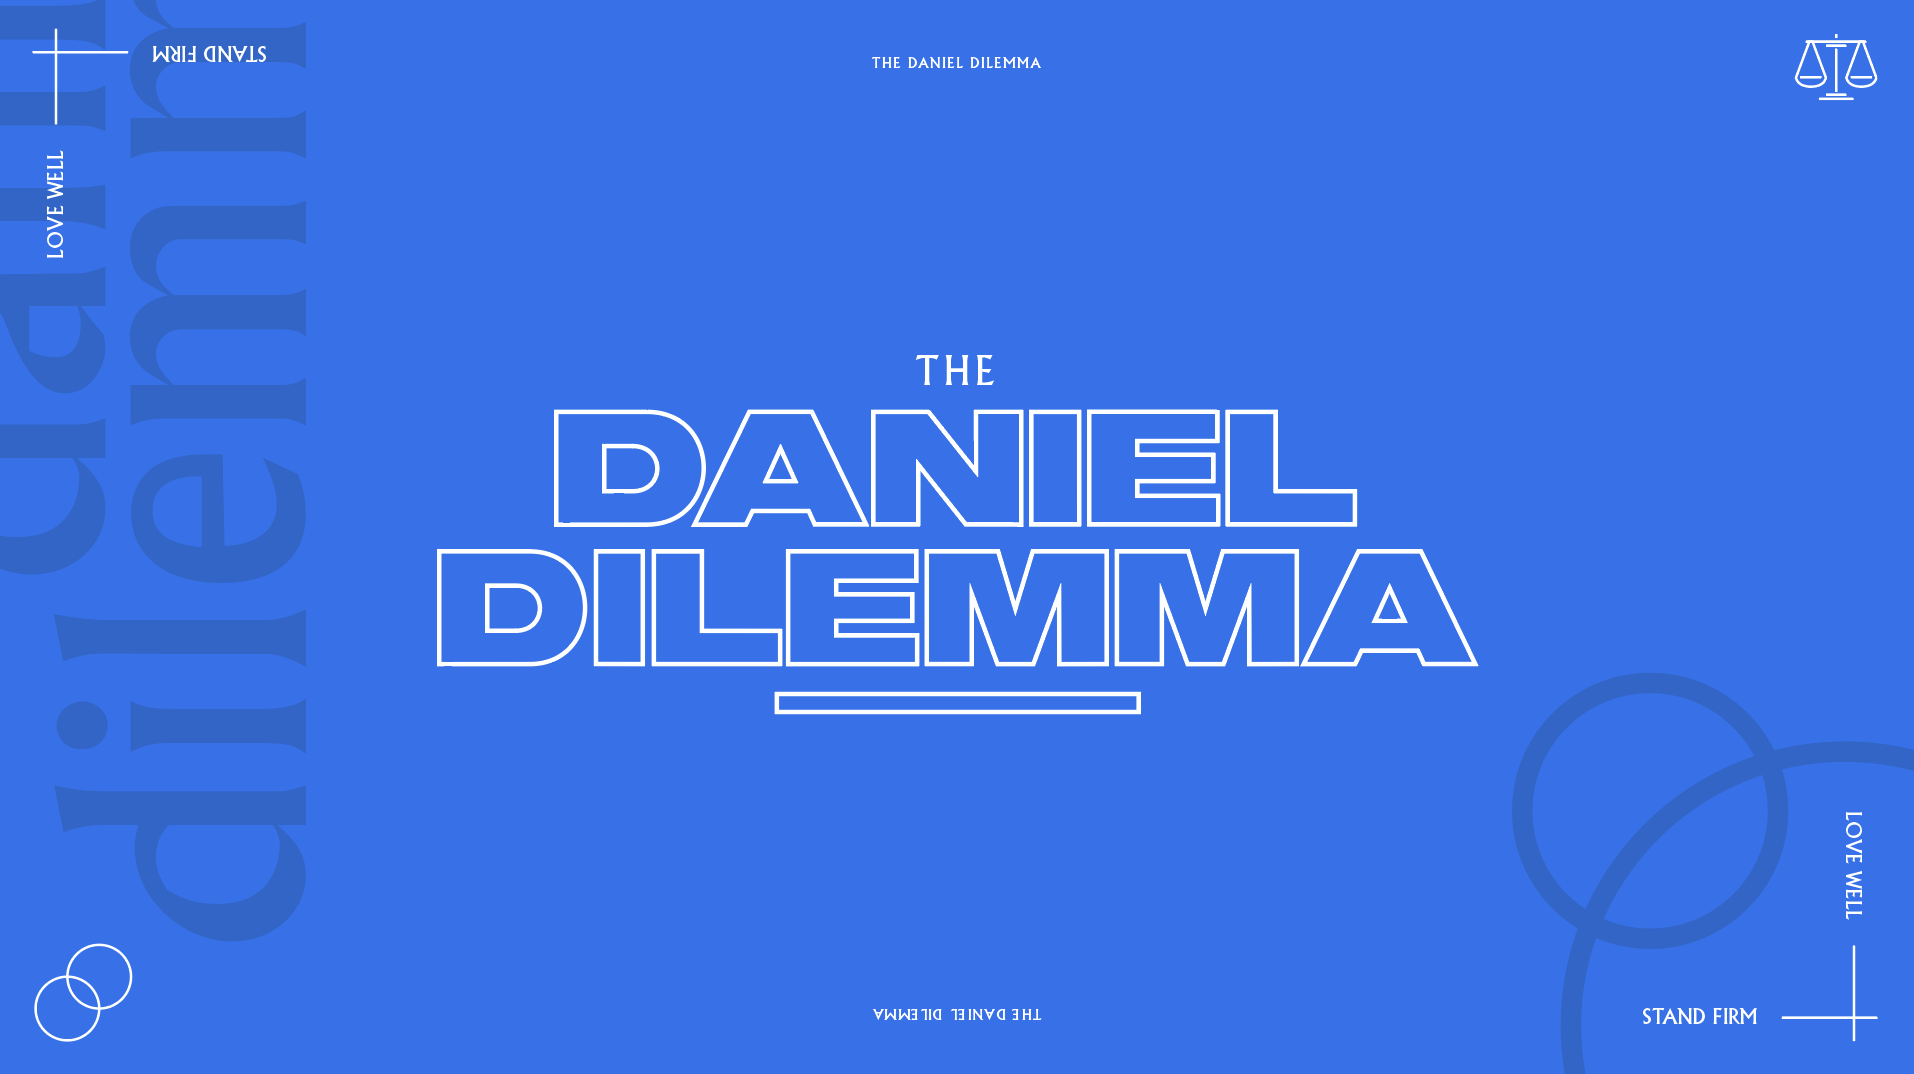 Daniel-Dilemma_Splash.jpg